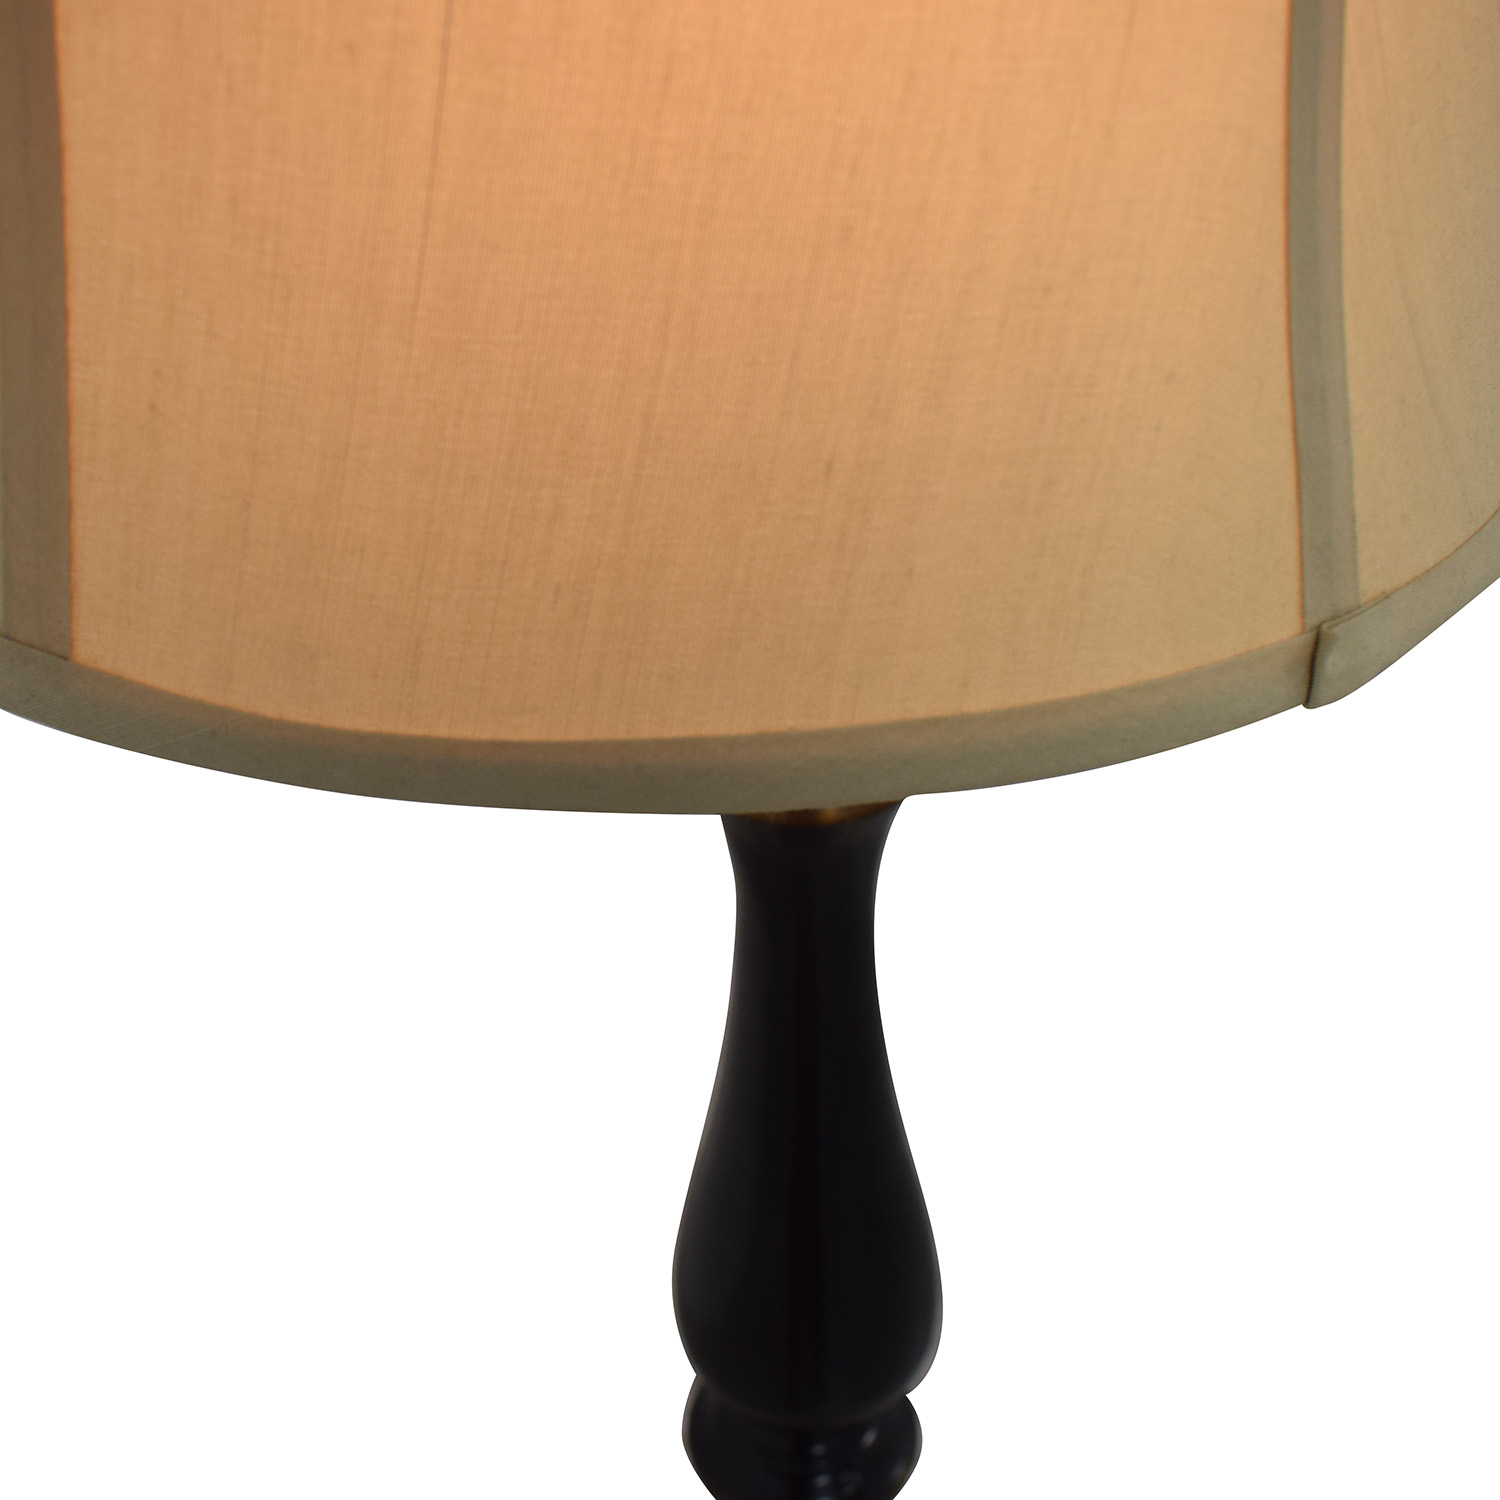 Decorative Floor Lamp for sale